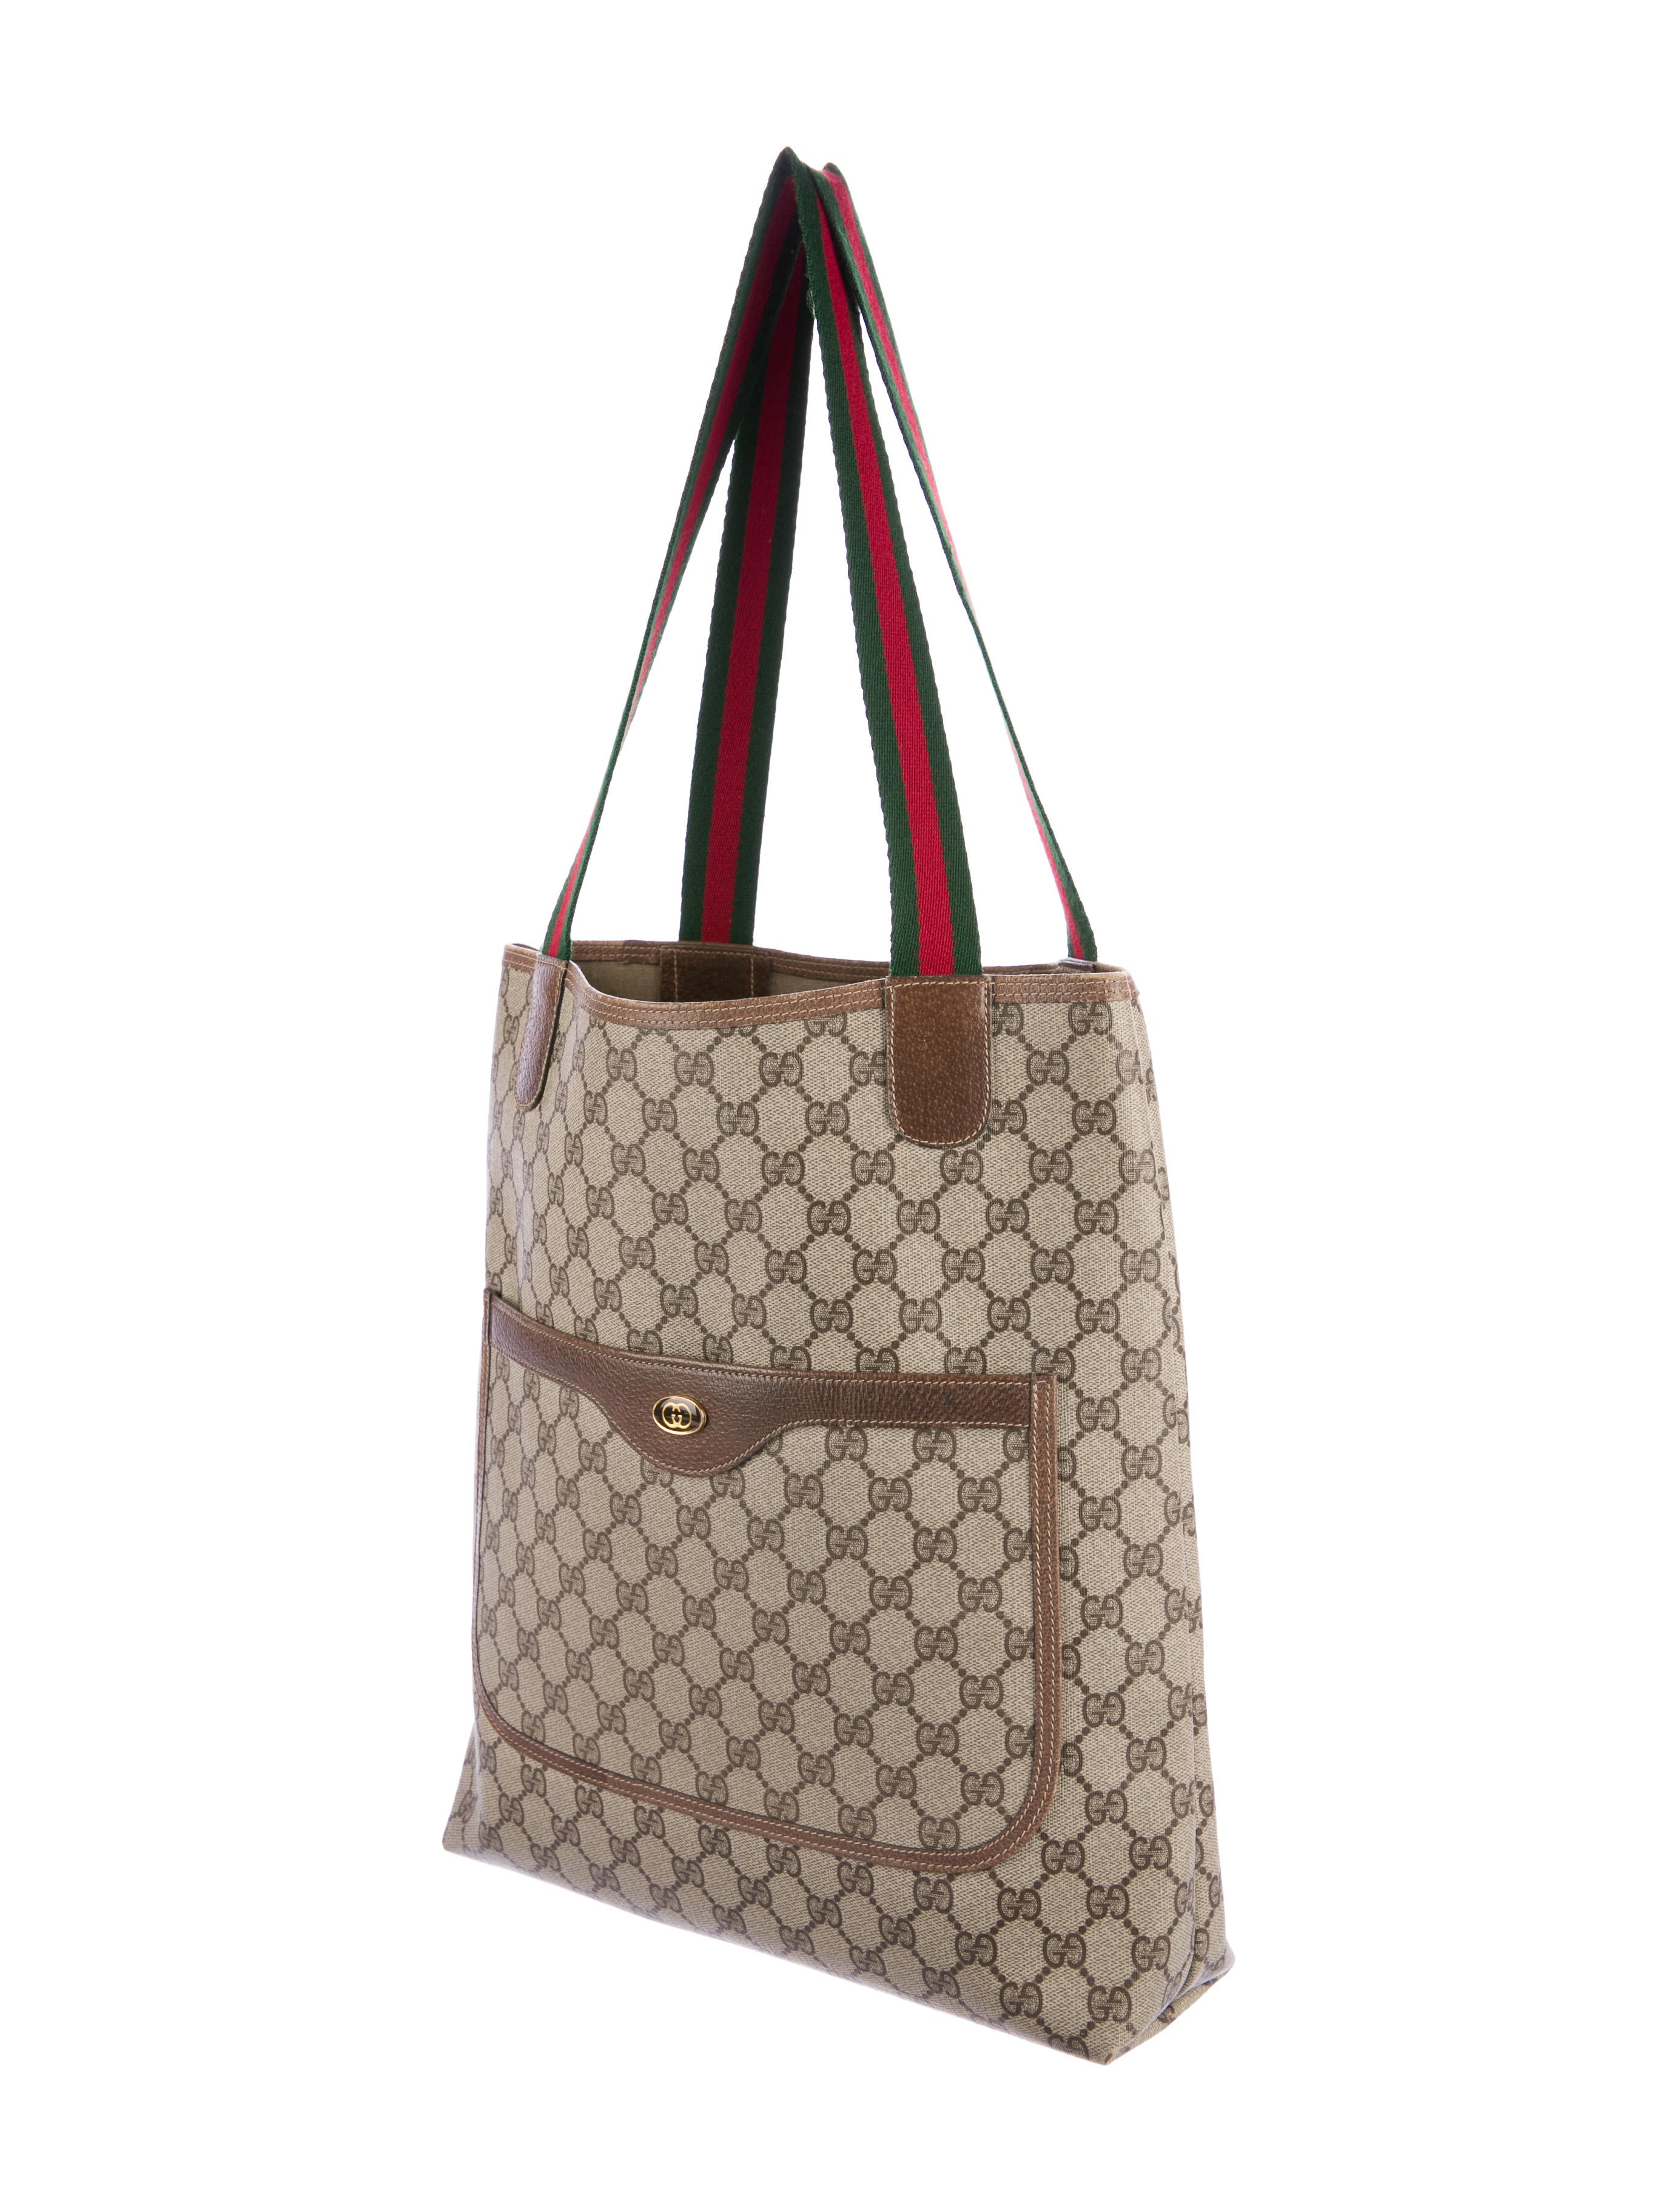 3bfd36c1bd10 Gucci Vintage GG Plus Tote - Handbags - GUC161267 | The RealReal. Vintage GUCCI  Coated Canvas ...